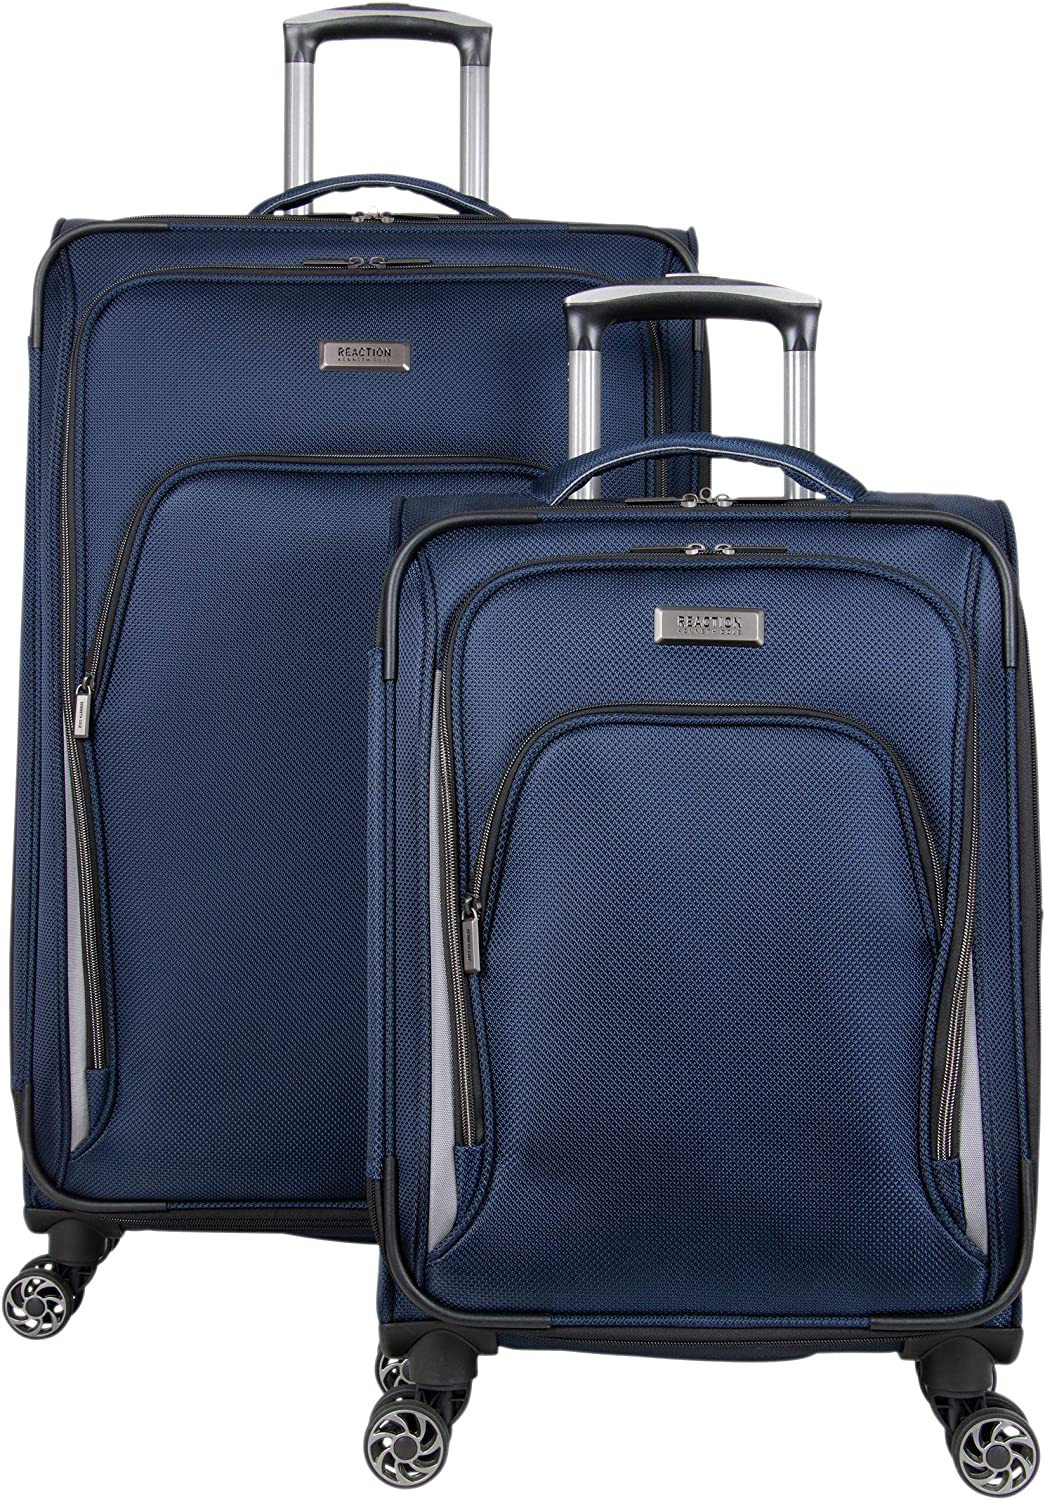 Kenneth Cole Reaction Cloud City 2-Piece 20 Carry-On 28 Check Size Lightweight Softside Expandable 8-Wheel Spinner Travel Luggage Set, Navy